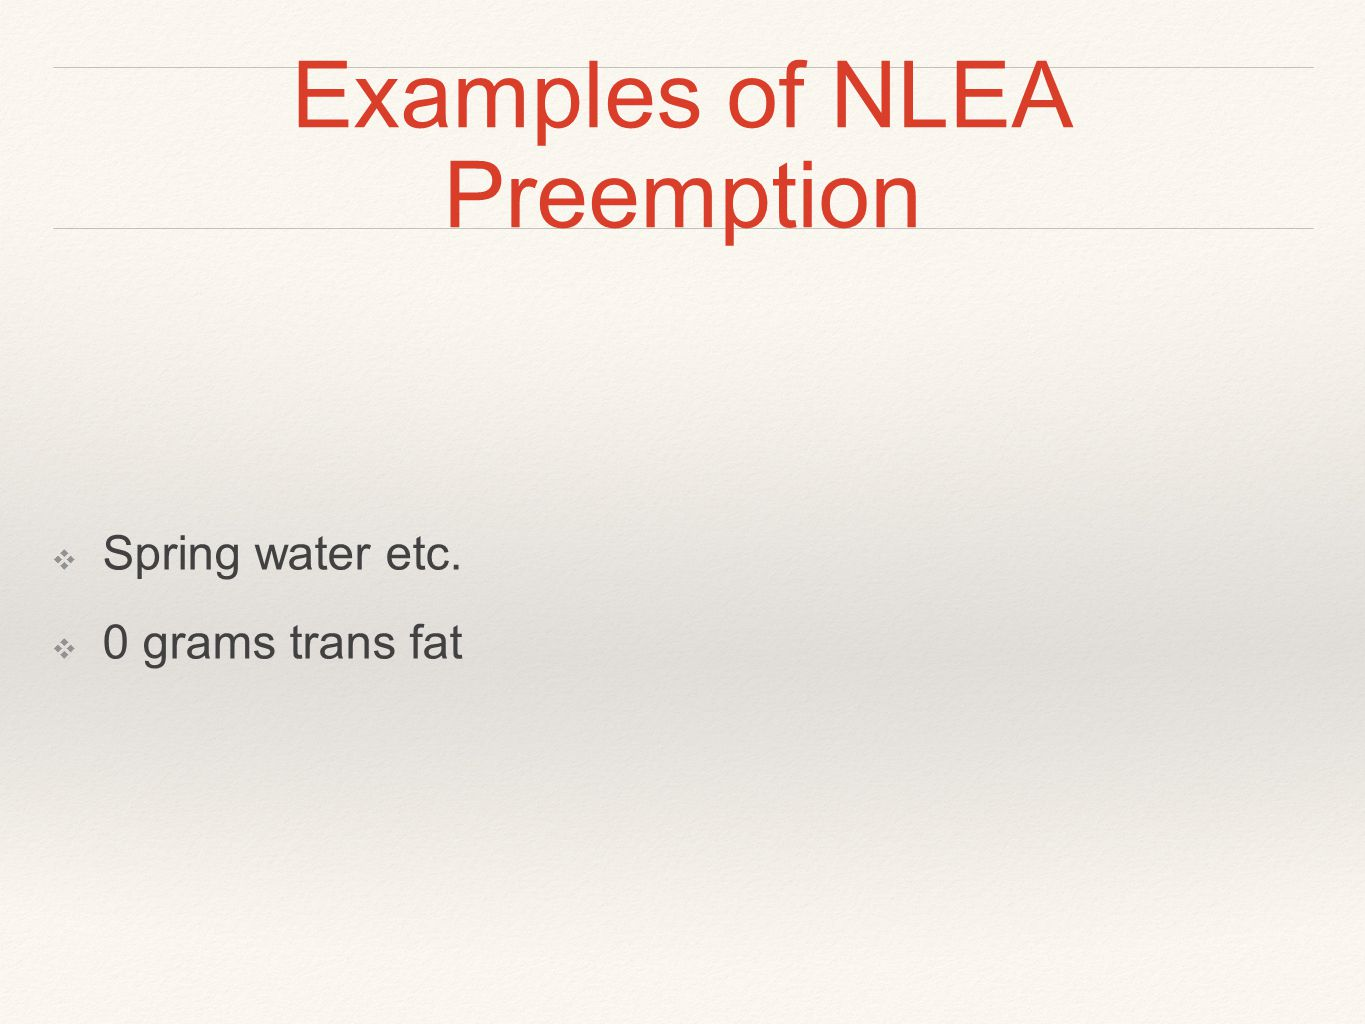 Examples of NLEA Preemption ❖ Spring water etc. ❖ 0 grams trans fat